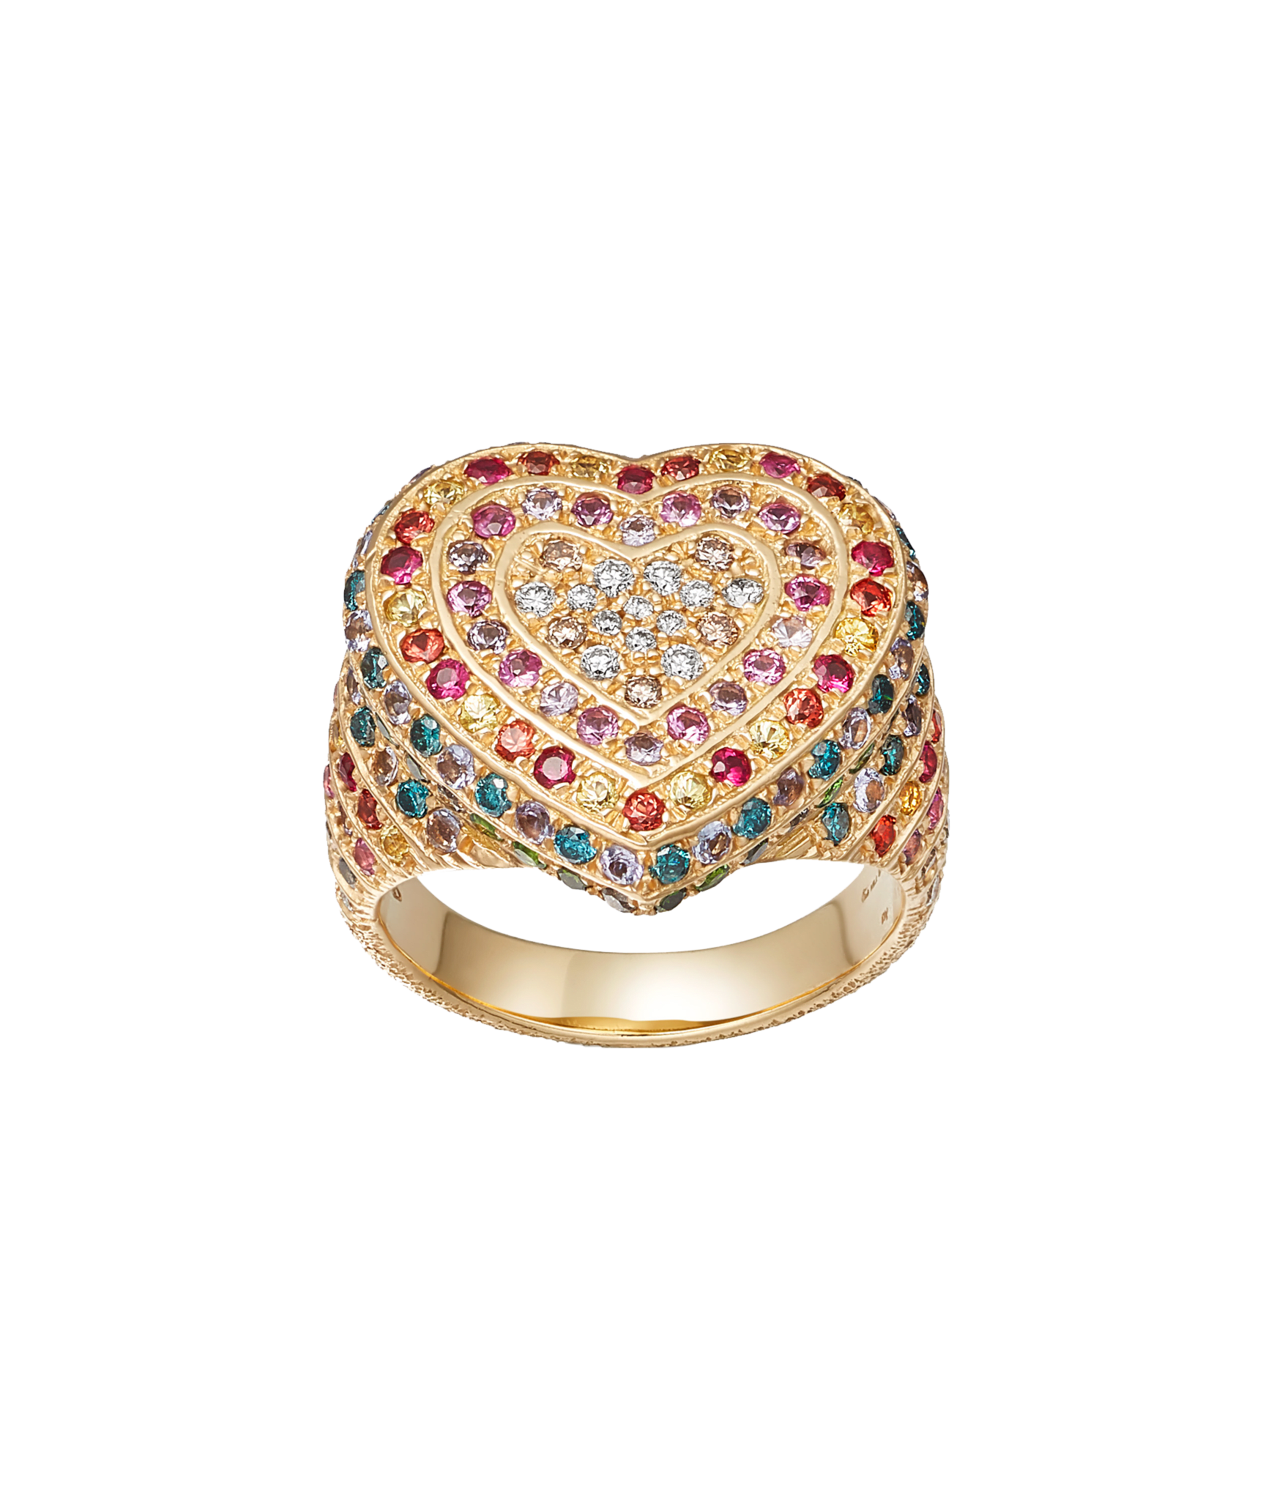 Carolina Bucci Rainbow Pavé Heart Ring in 18k Yellow Gold